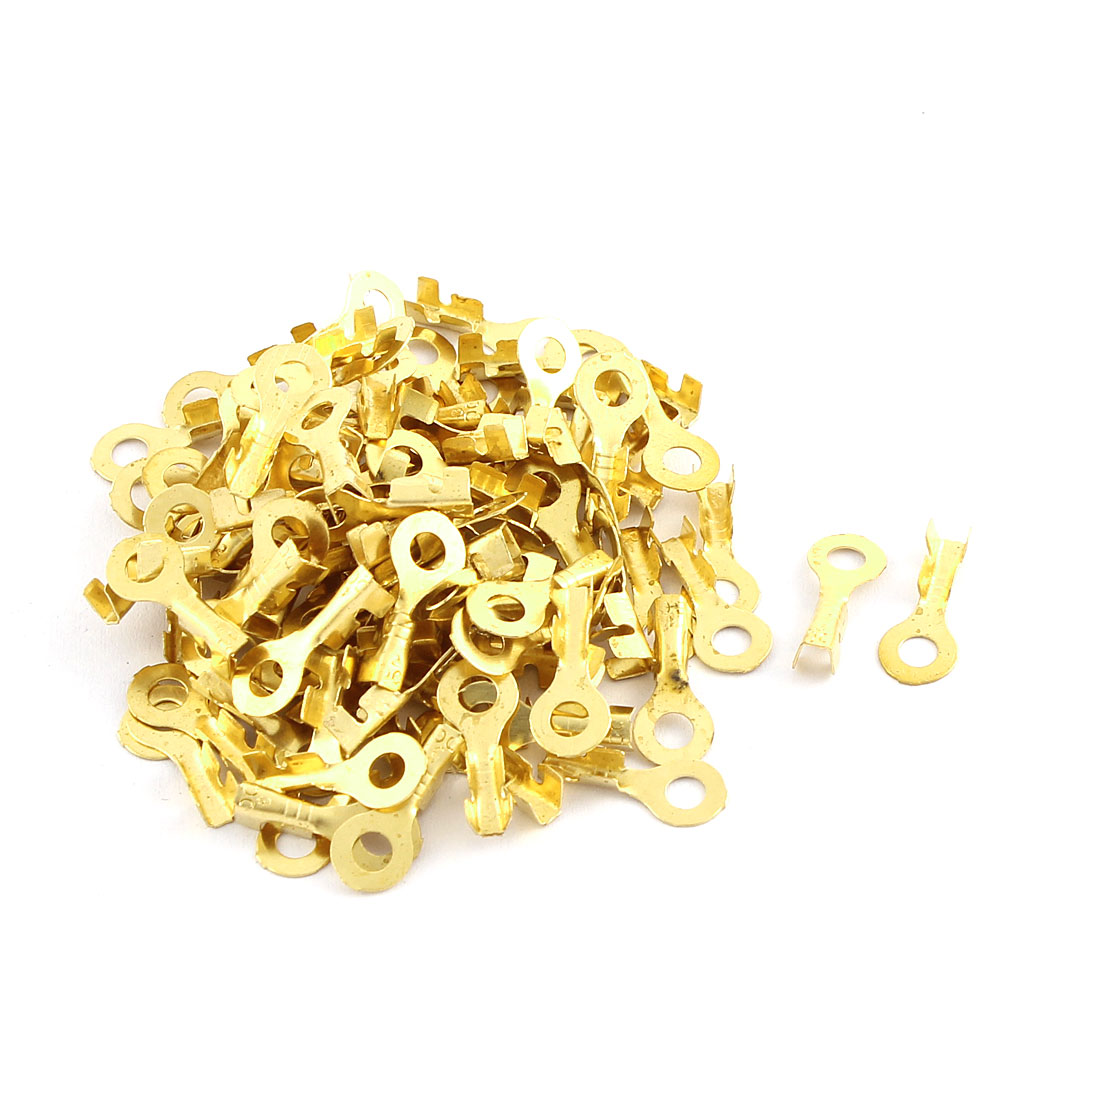 100 Pcs Quick Disconnects Non-insulated Ring Terminal Lug Connector 3mm